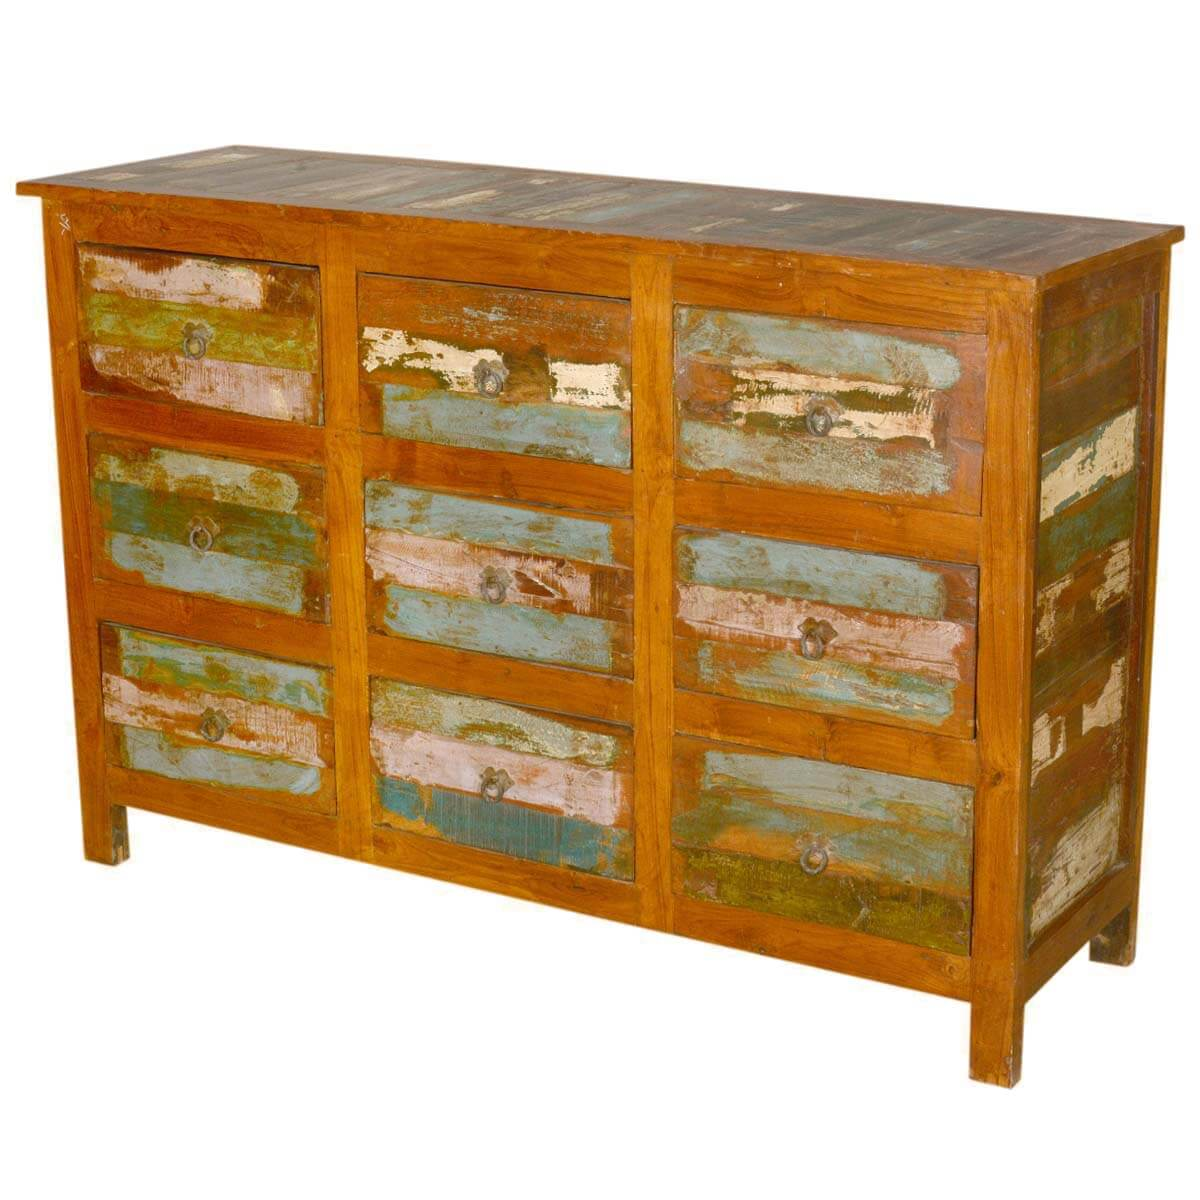 Arbela Rustic Reclaimed Wood Bedroom Dresser Chest With 9 Drawers